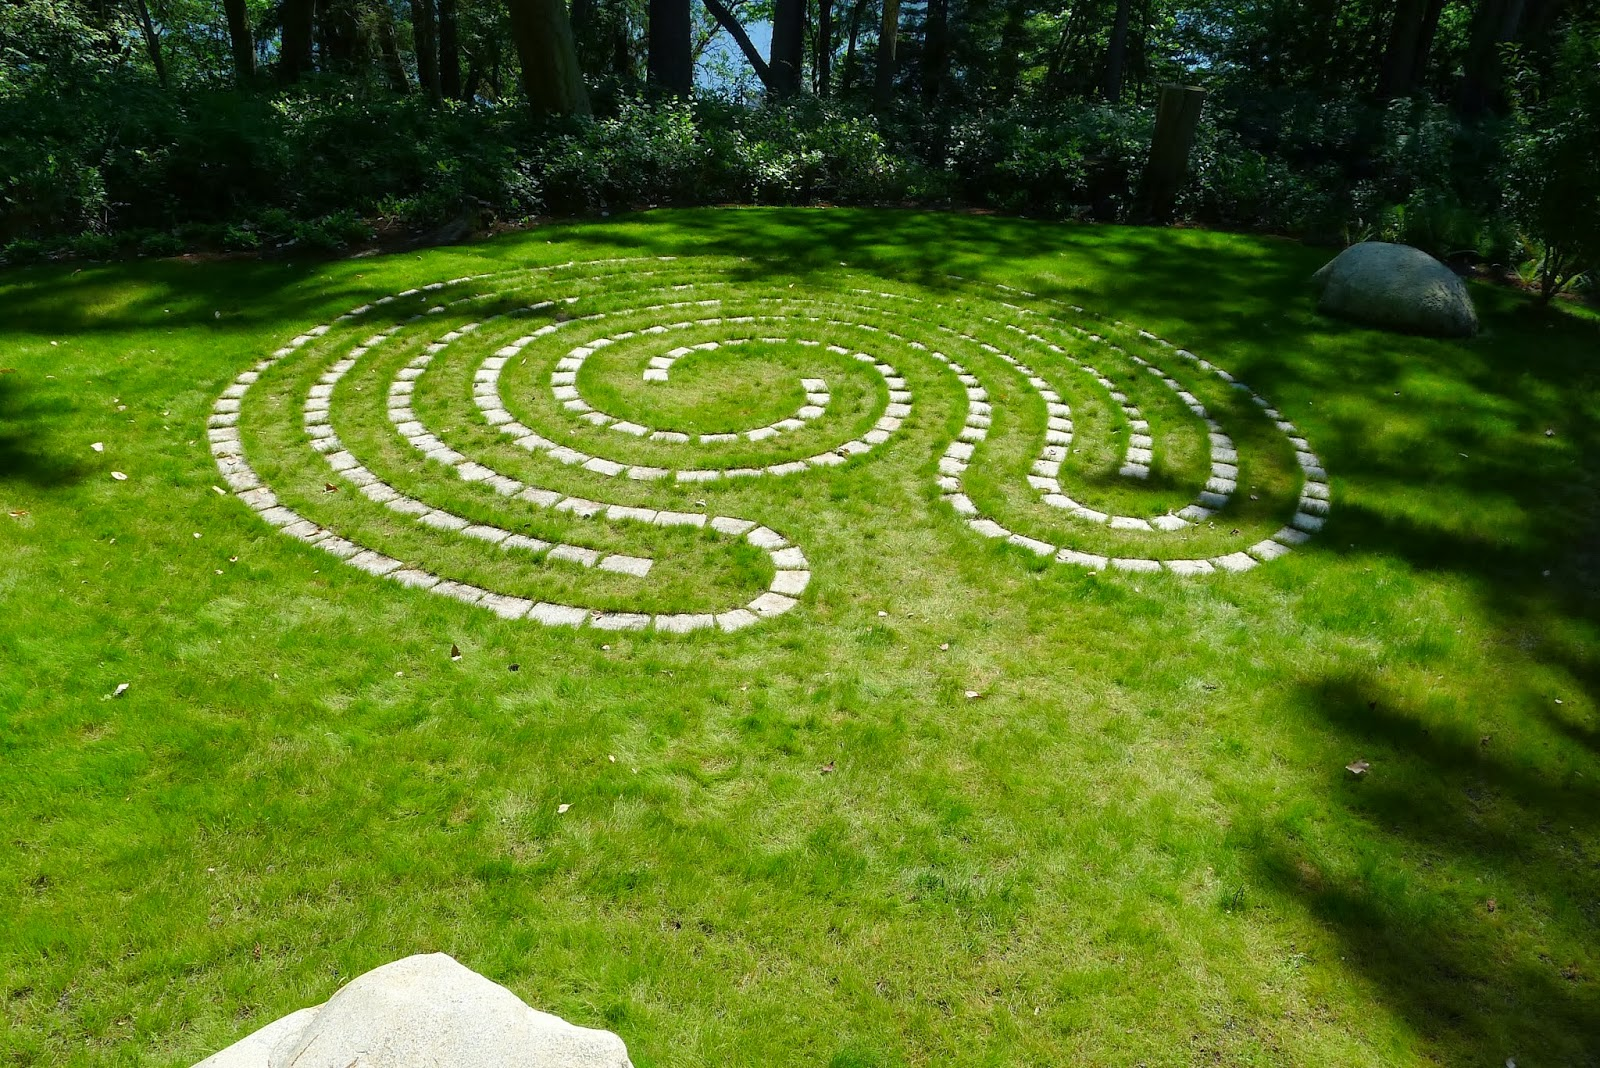 The Original Labyrinth